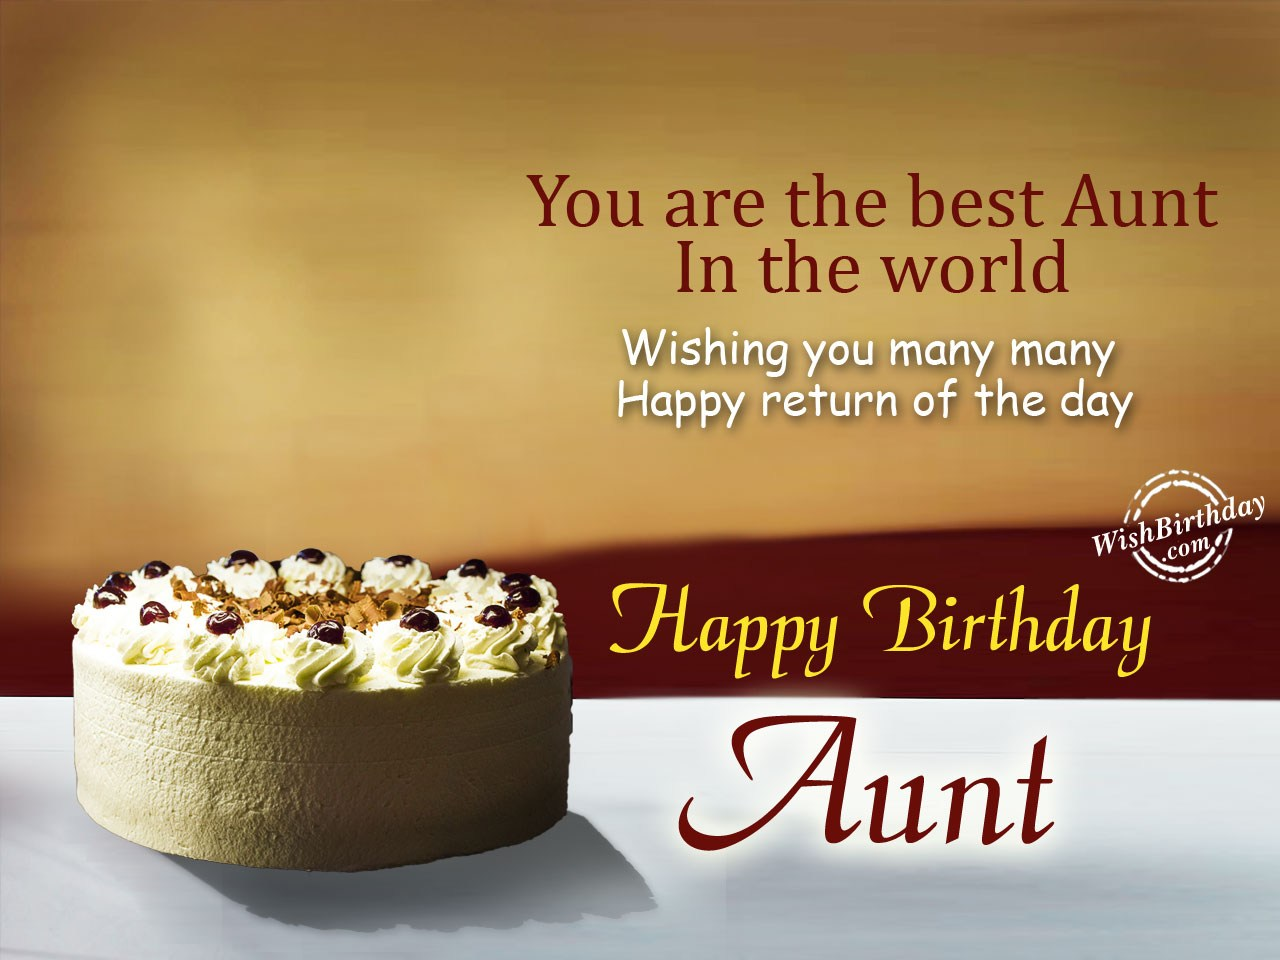 happy birthday wish you all the best in the world ; images-of-happy-birthday-wishes-for-aunt%252B%2525287%252529